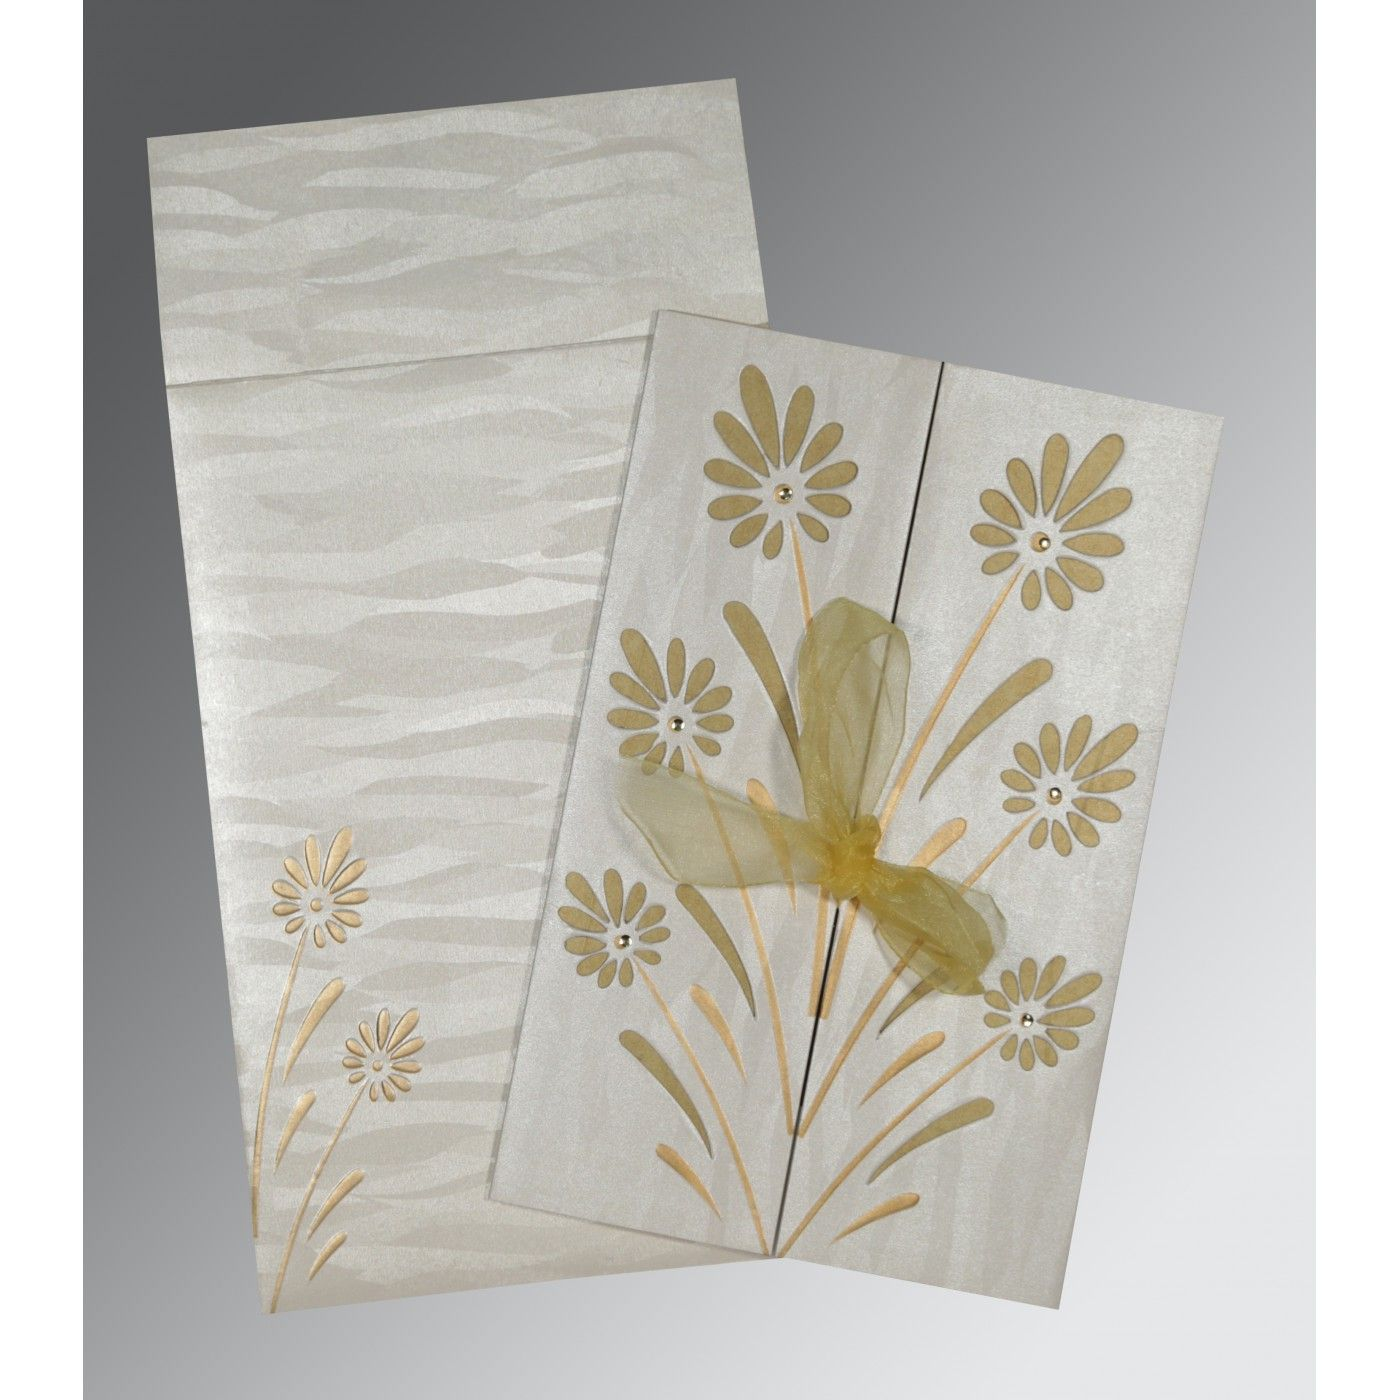 METALLIC SILVER SHIMMERY FLORAL THEMED - EMBOSSED WEDDING CARD : CG-1372 - IndianWeddingCards